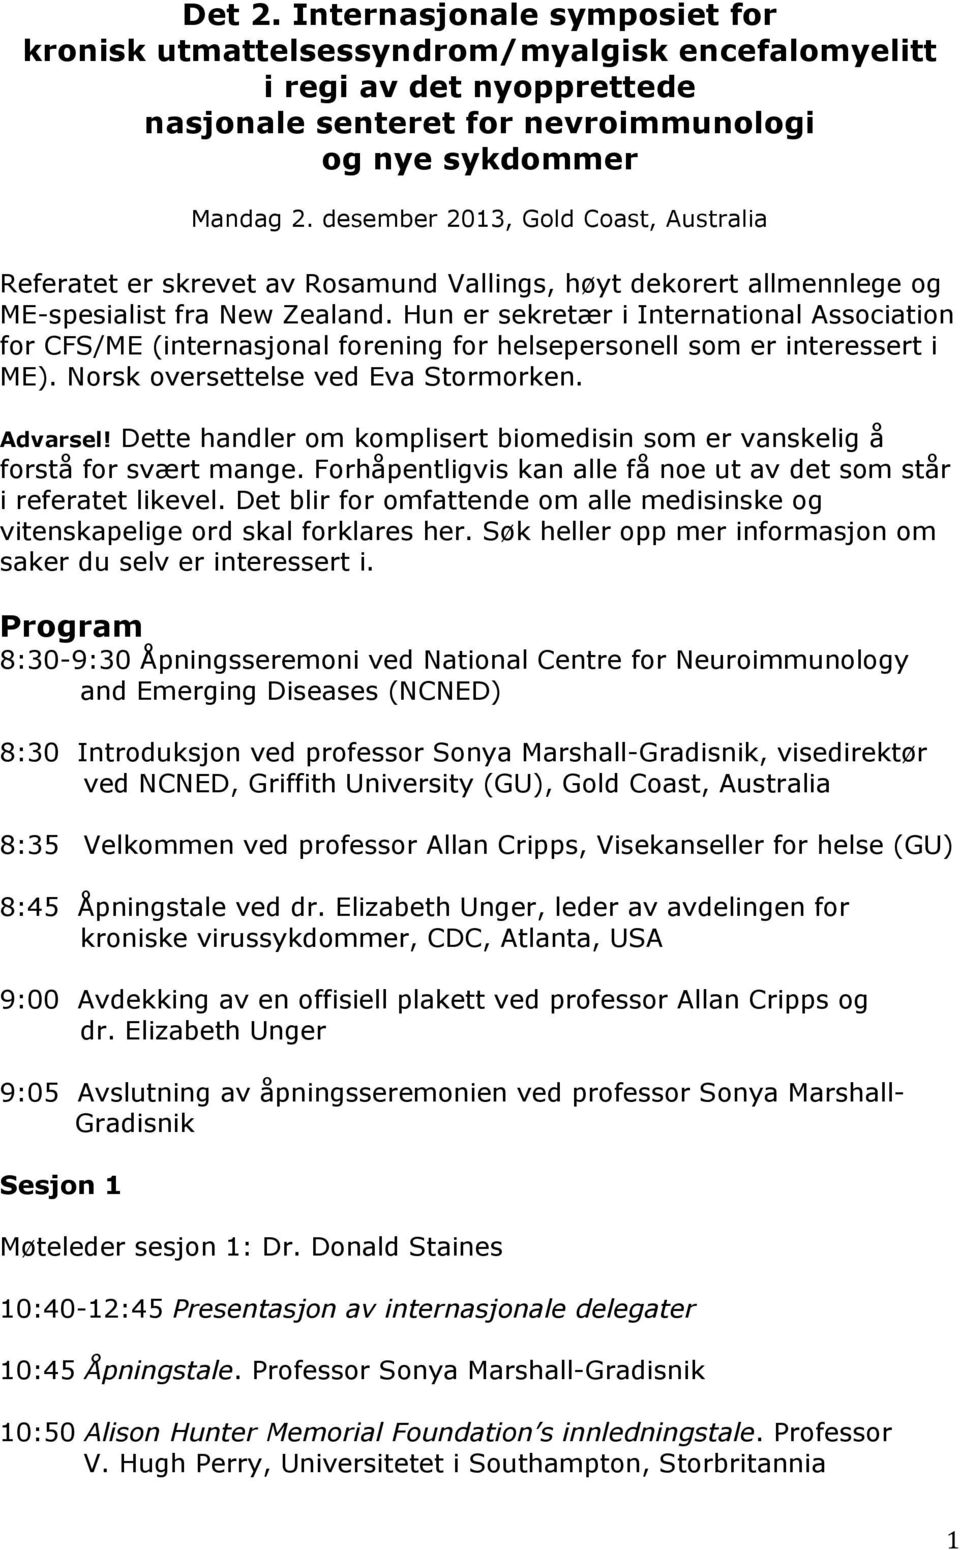 Hun er sekretær i International Association for CFS/ME (internasjonal forening for helsepersonell som er interessert i ME). Norsk oversettelse ved Eva Stormorken. Advarsel!